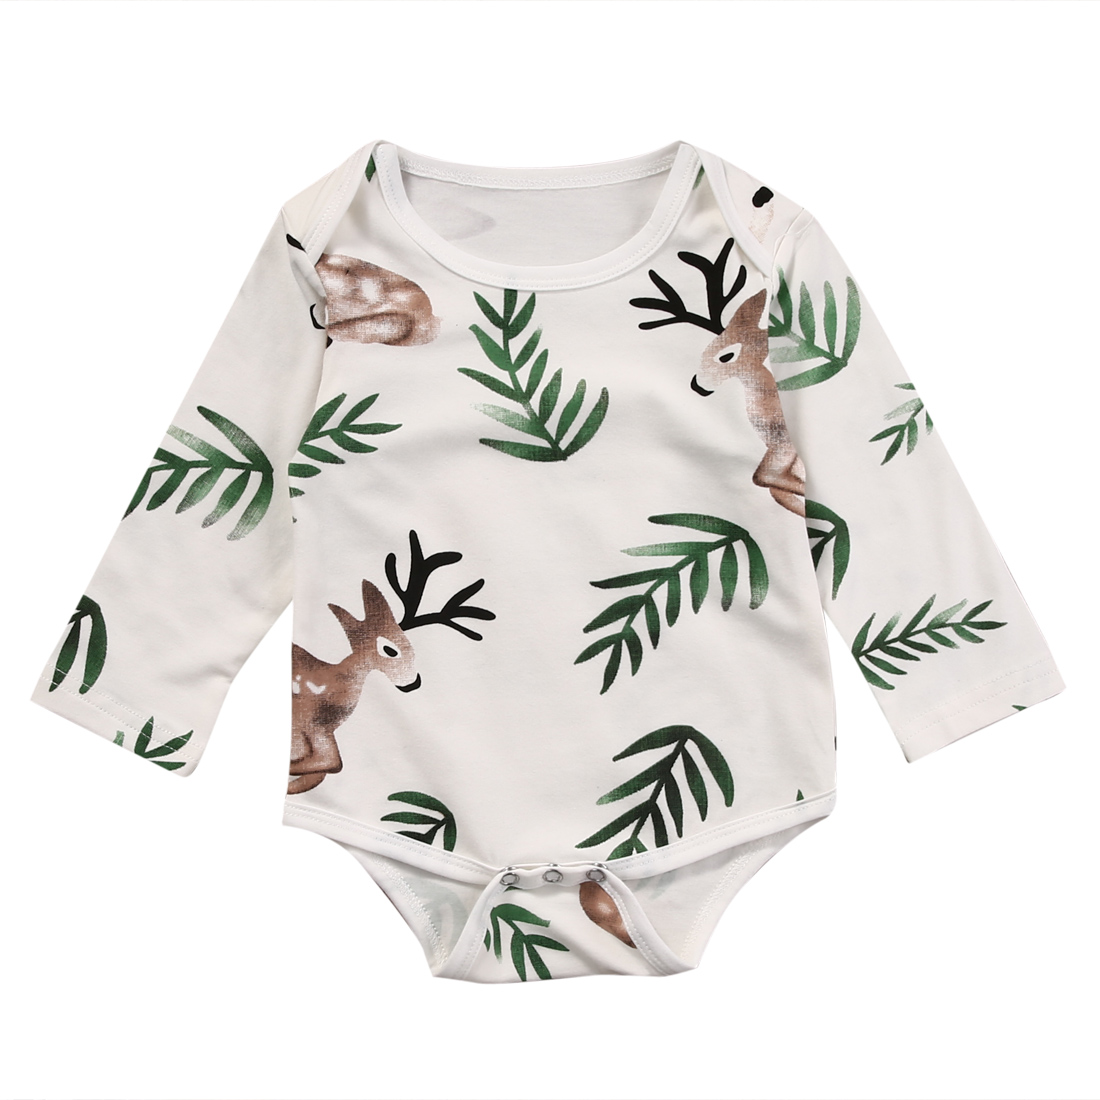 Newborn Infant Baby Boy Girl Kids Cotton Romper Jumpsuit One-Pieces Clothes Outfits newborn infant baby girl clothes strap lace floral romper jumpsuit outfit summer cotton backless one pieces outfit baby onesie